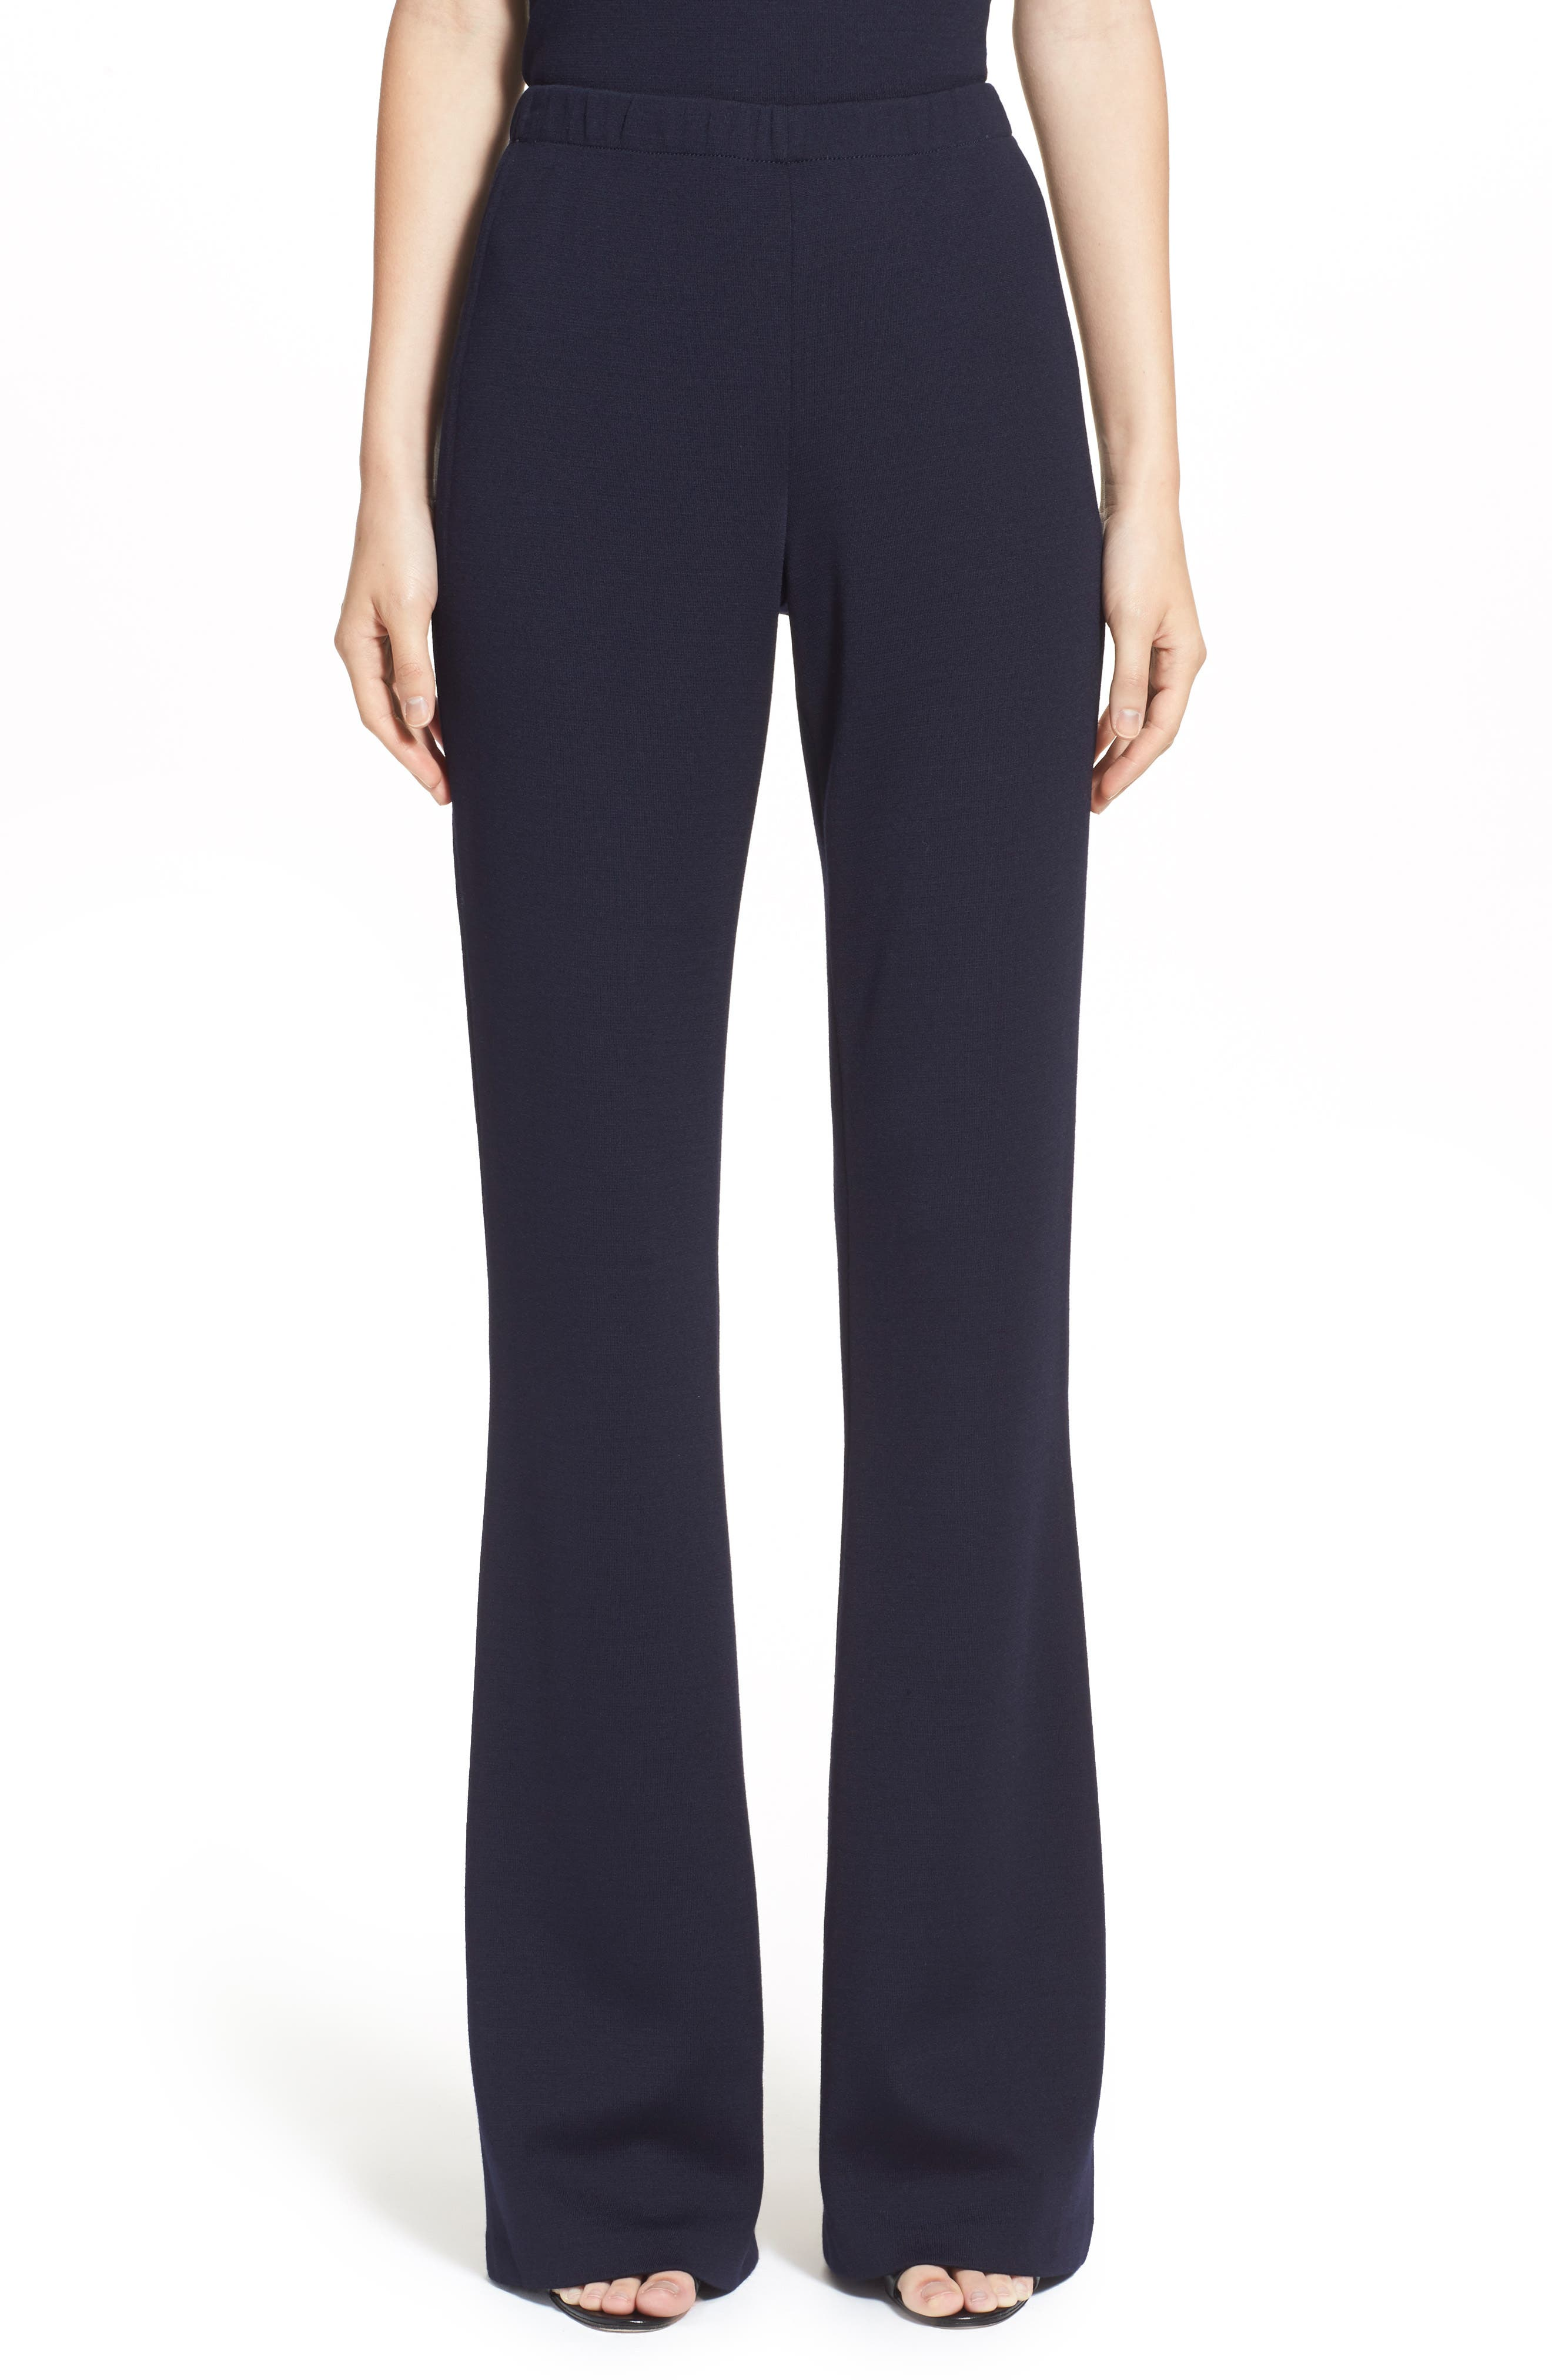 As versatile as they are flattering, these bootcut pants are crafted from a seasonless wool-blend knit with comfortable give and great shape retention. Style Name: St. John Collection Kasia Milano Knit Bootcut Pants. Style Number: 168149. Available in stores.